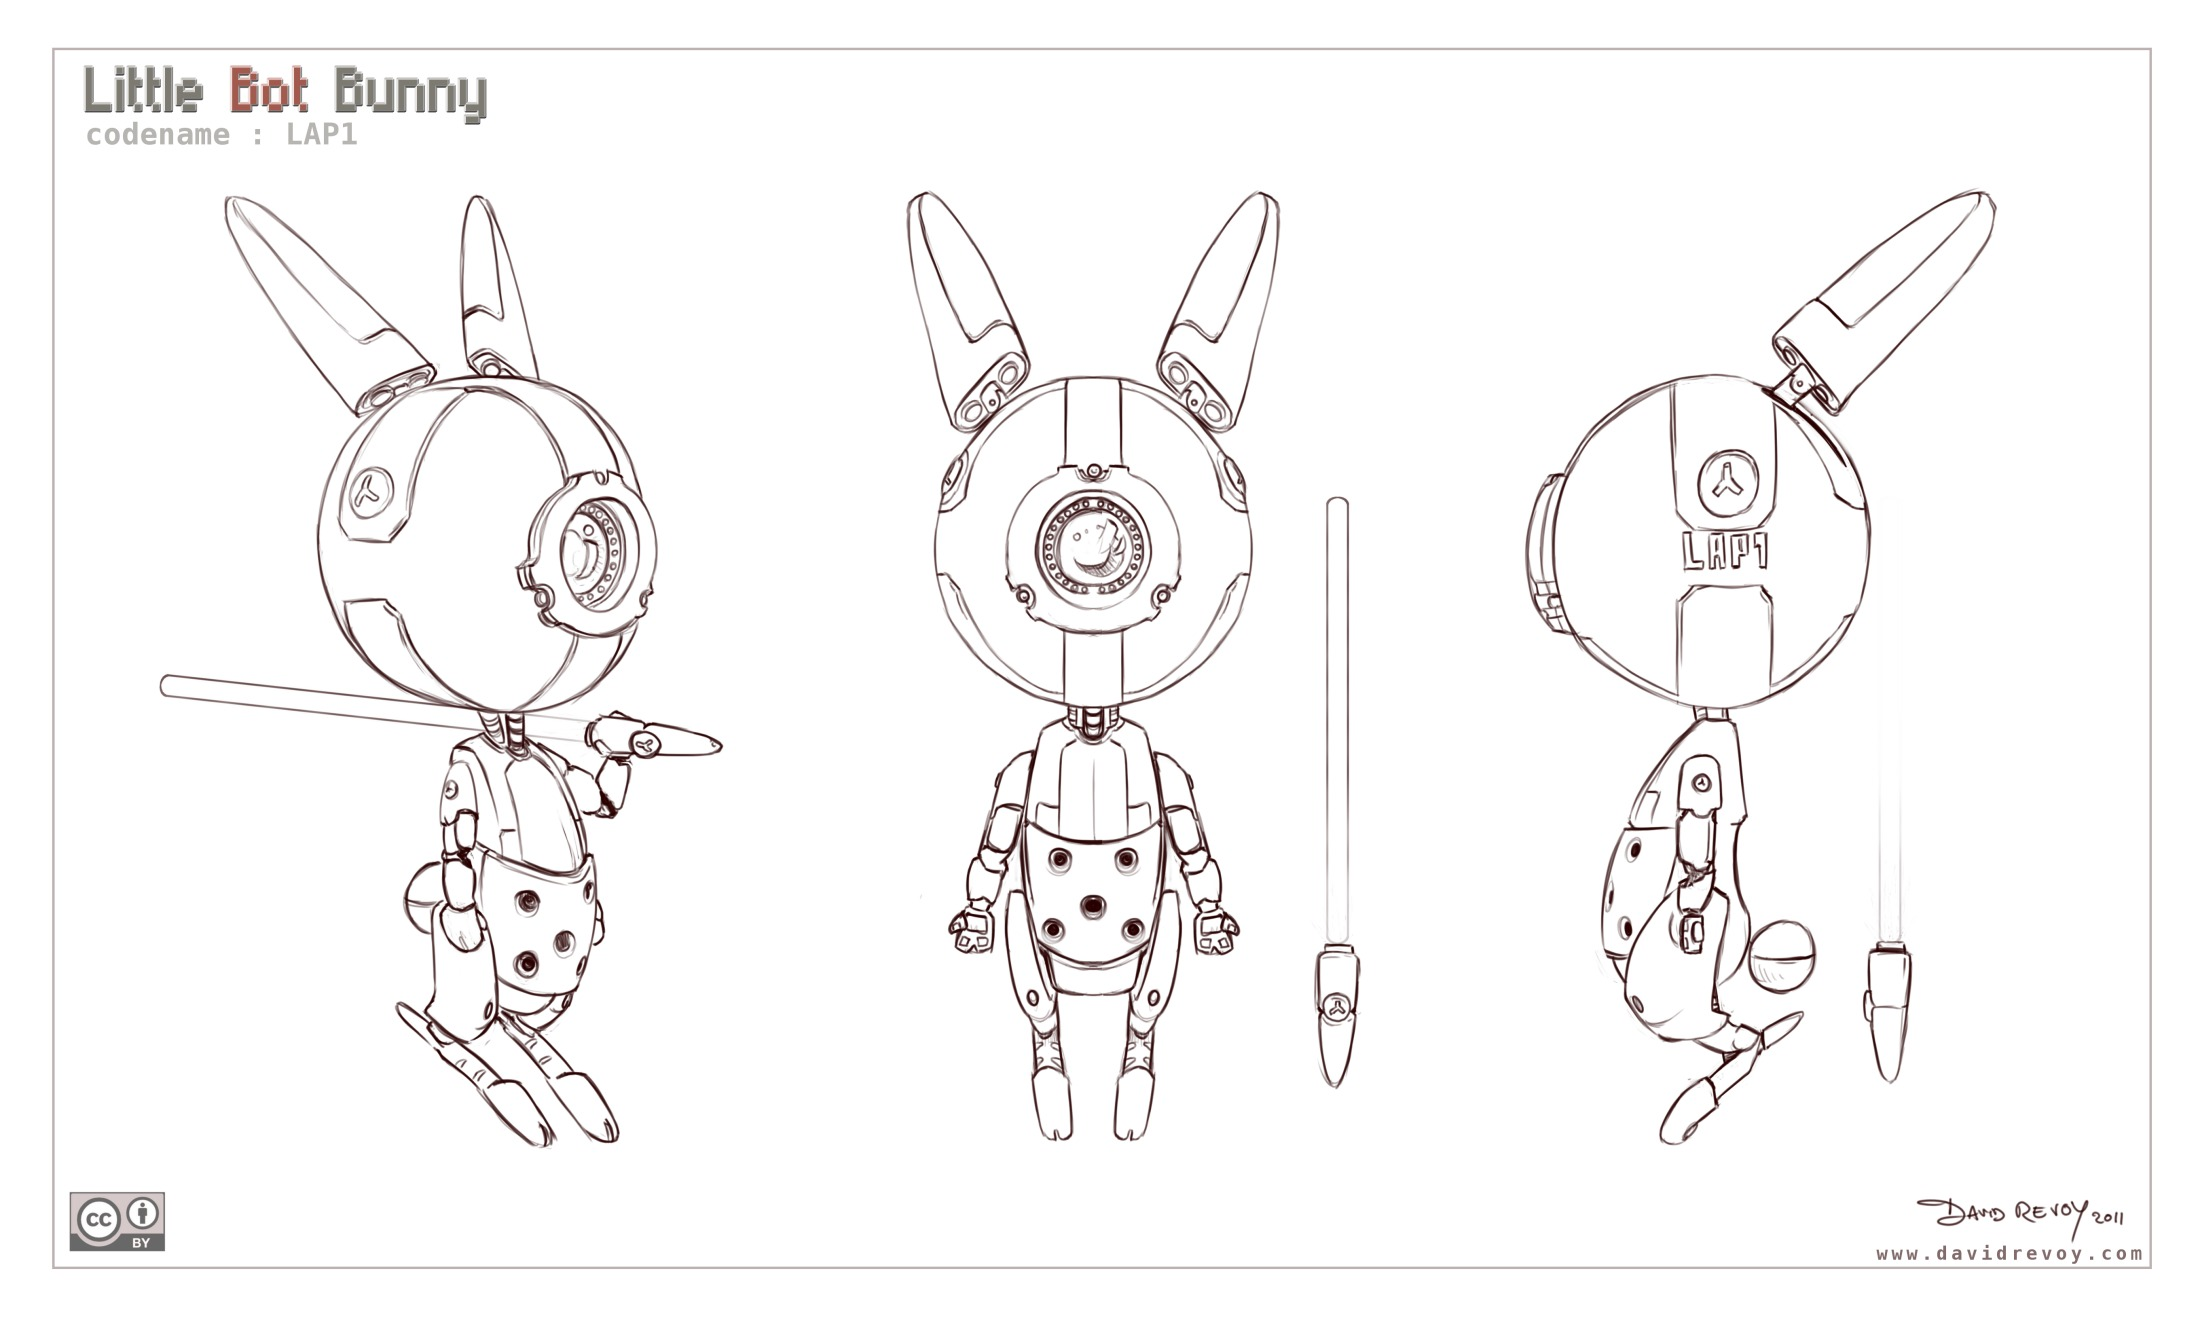 2d Character Design Pdf : Free d model sheet little bot bunny david revoy